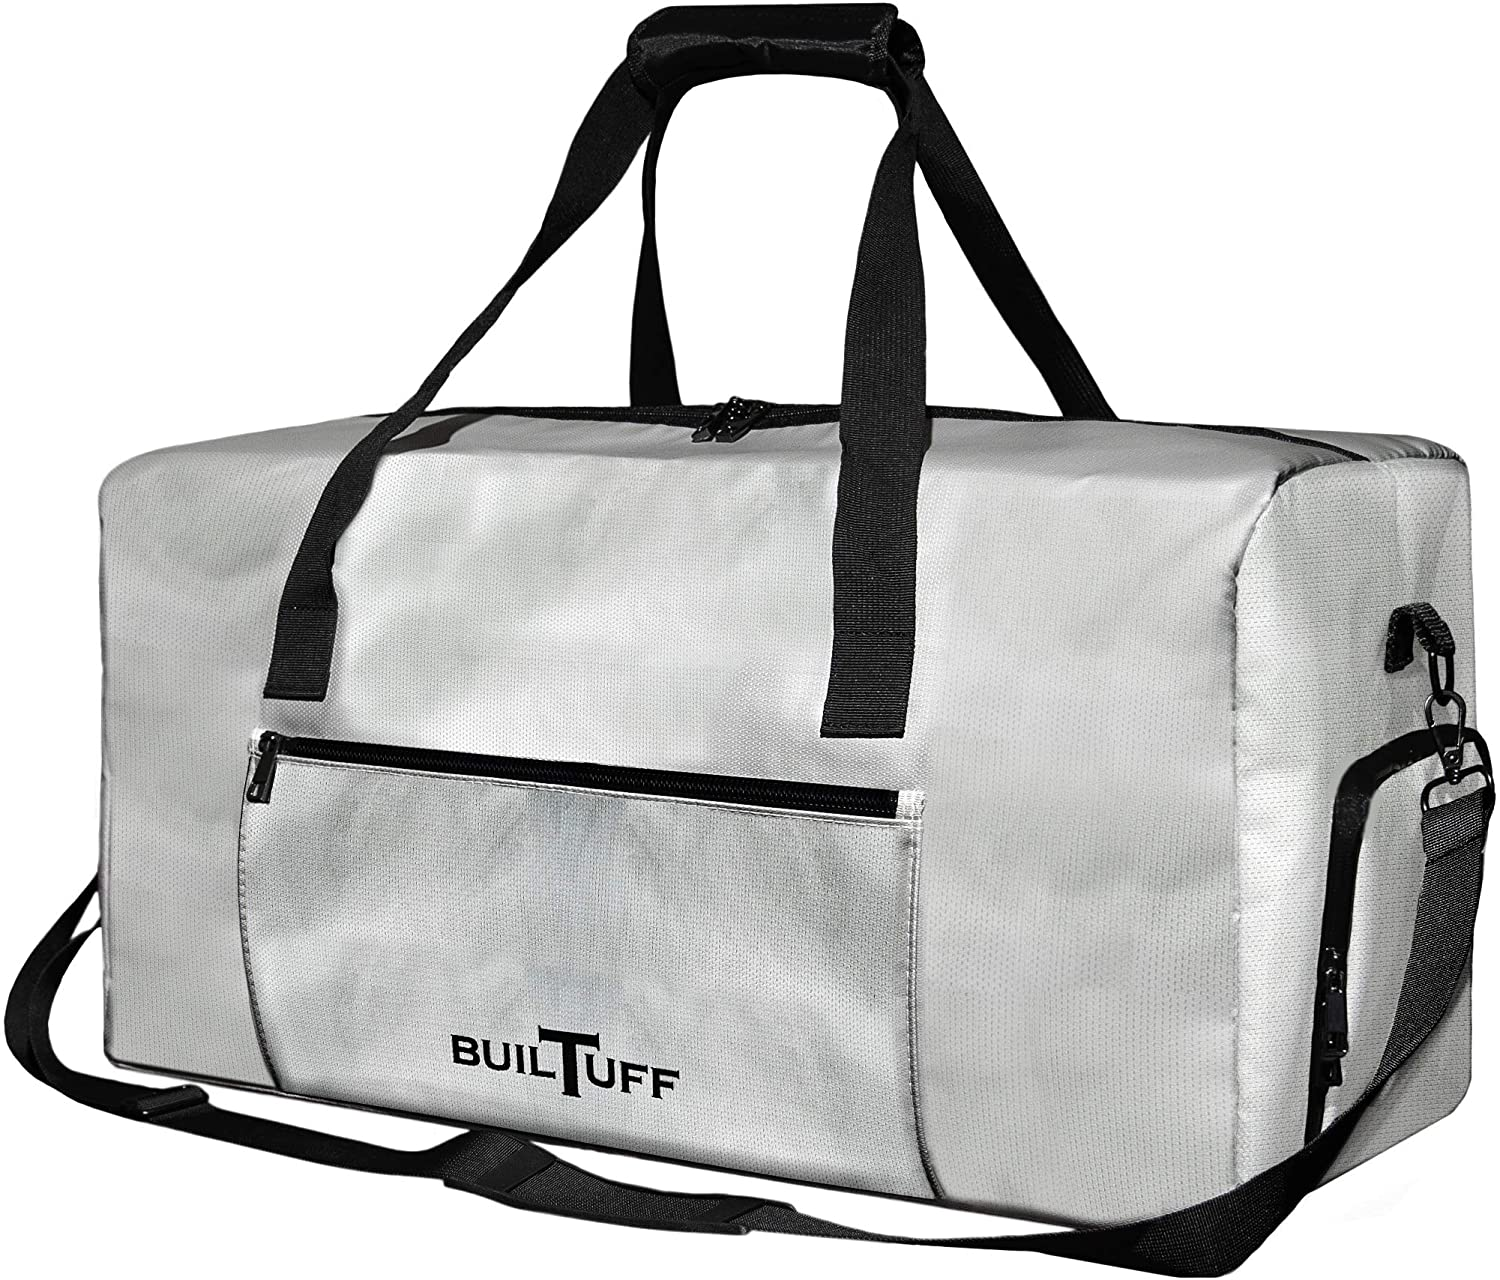 Fireproof and Waterproof Duffel Bag, Extra Large Fireproof Bag for Valuables, Fireproof Safe Storage Bag (Grey)